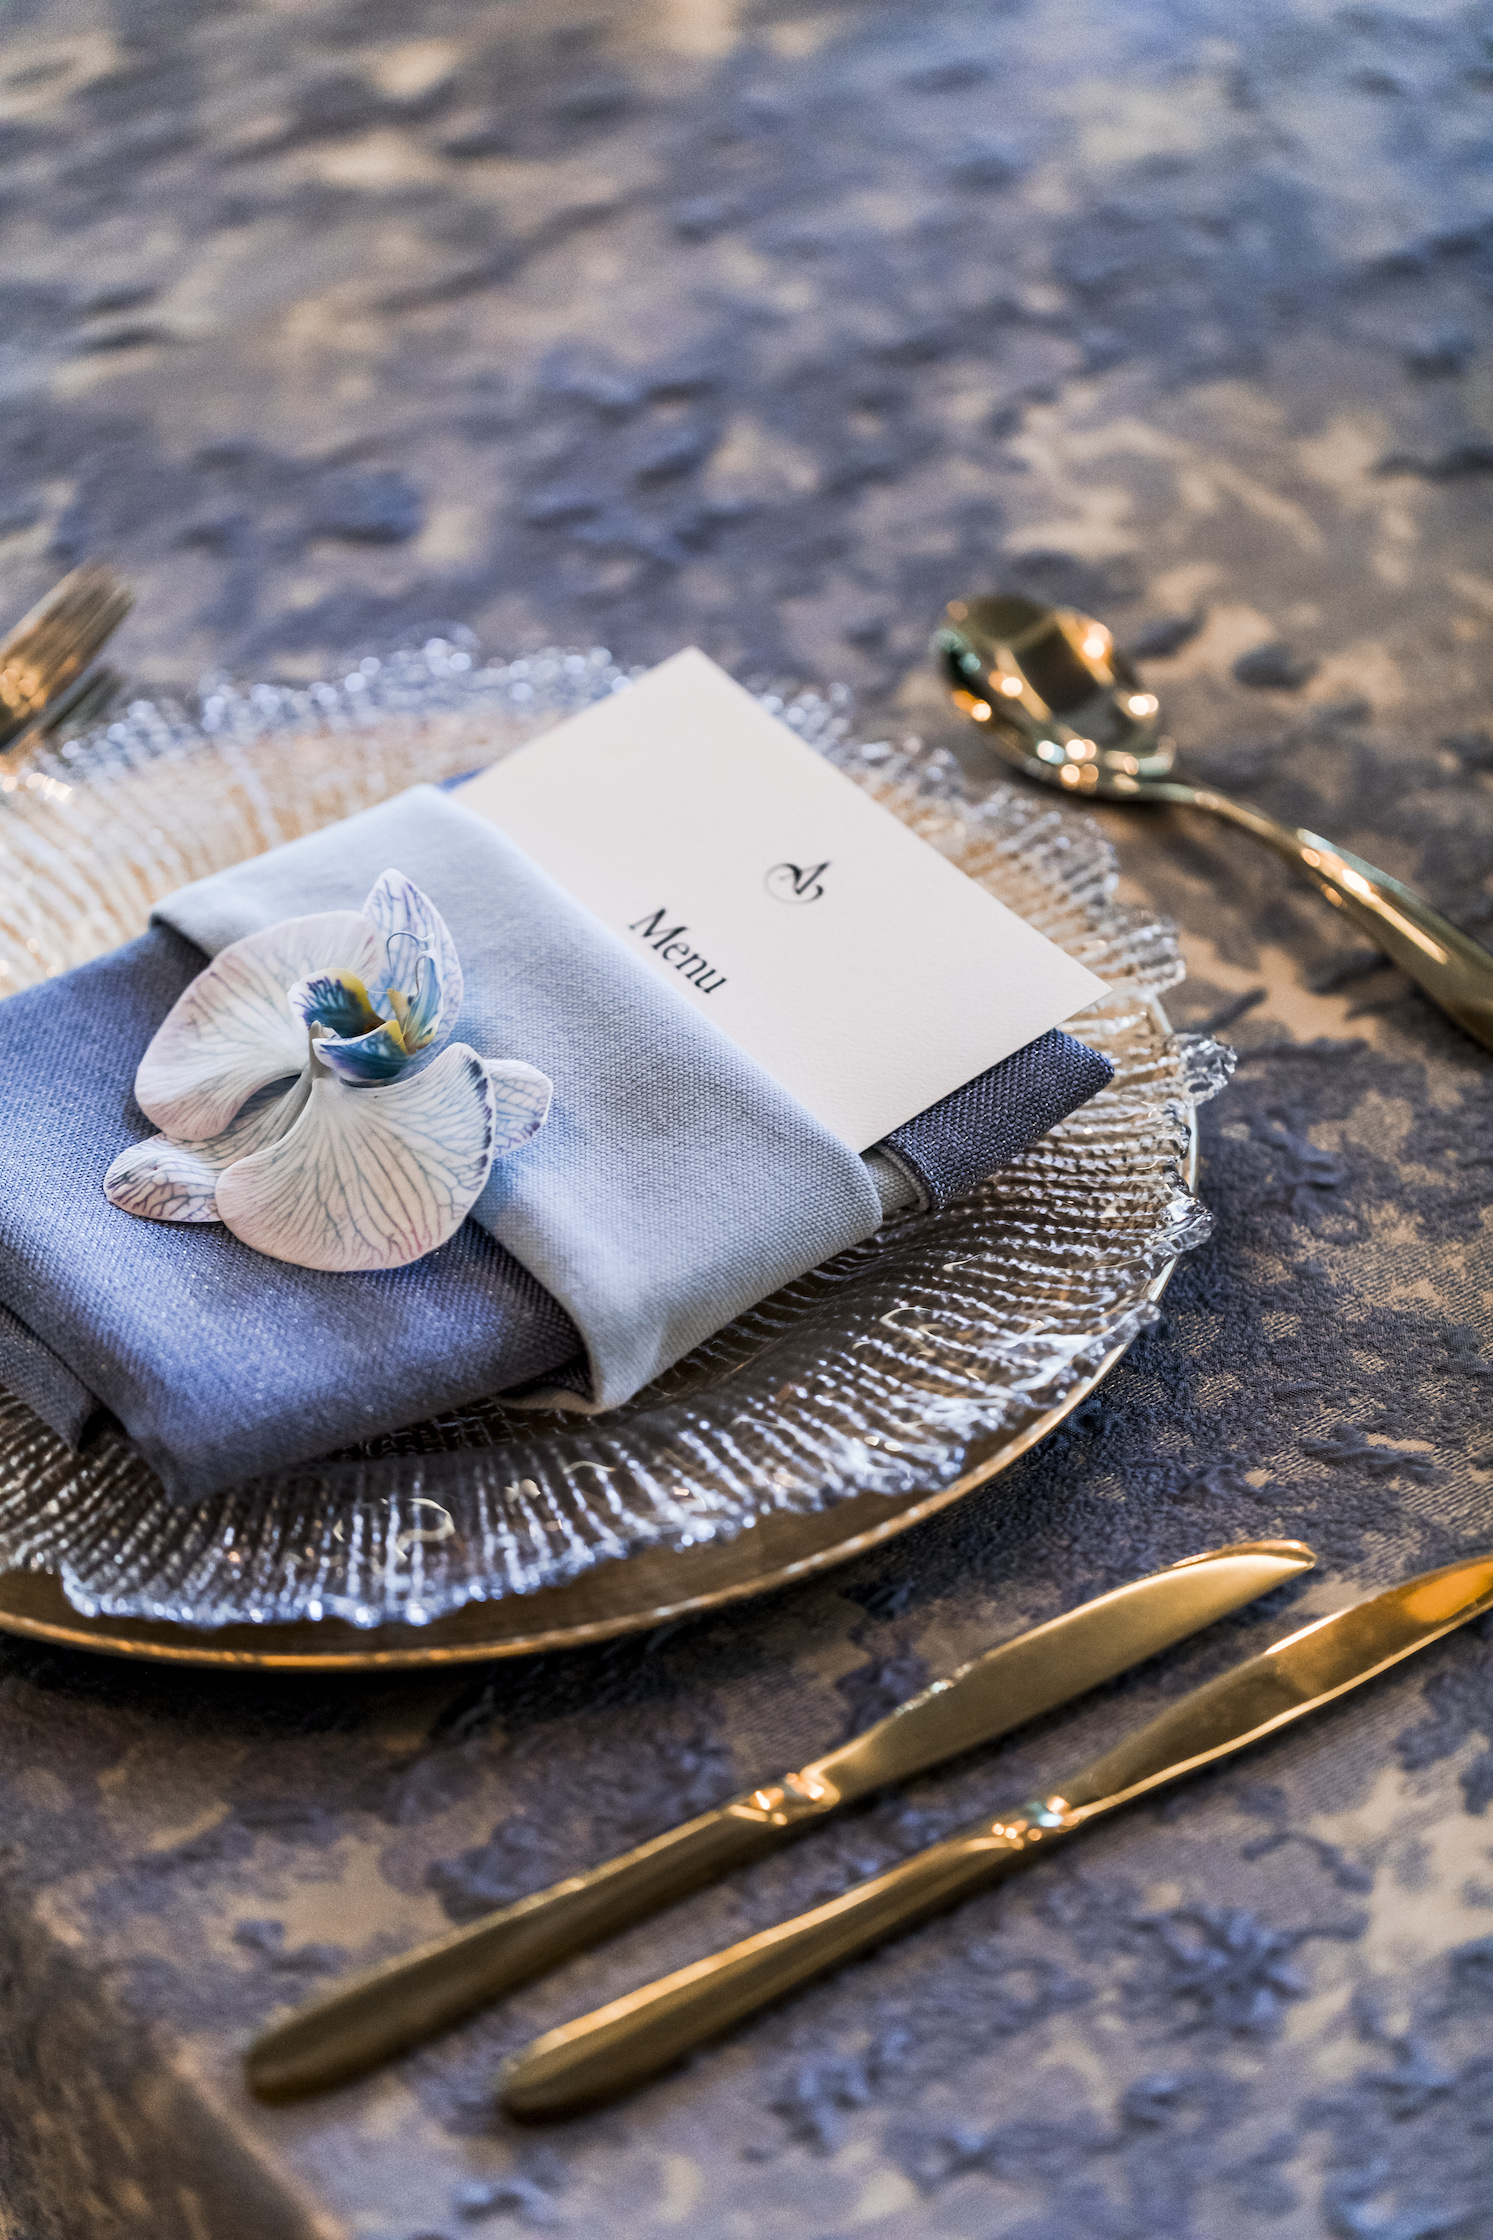 slate_plaster_luxury_linen_wedding_decor_sydney_tablecloth_blue_gold_theme_inlighten_photography.jpg